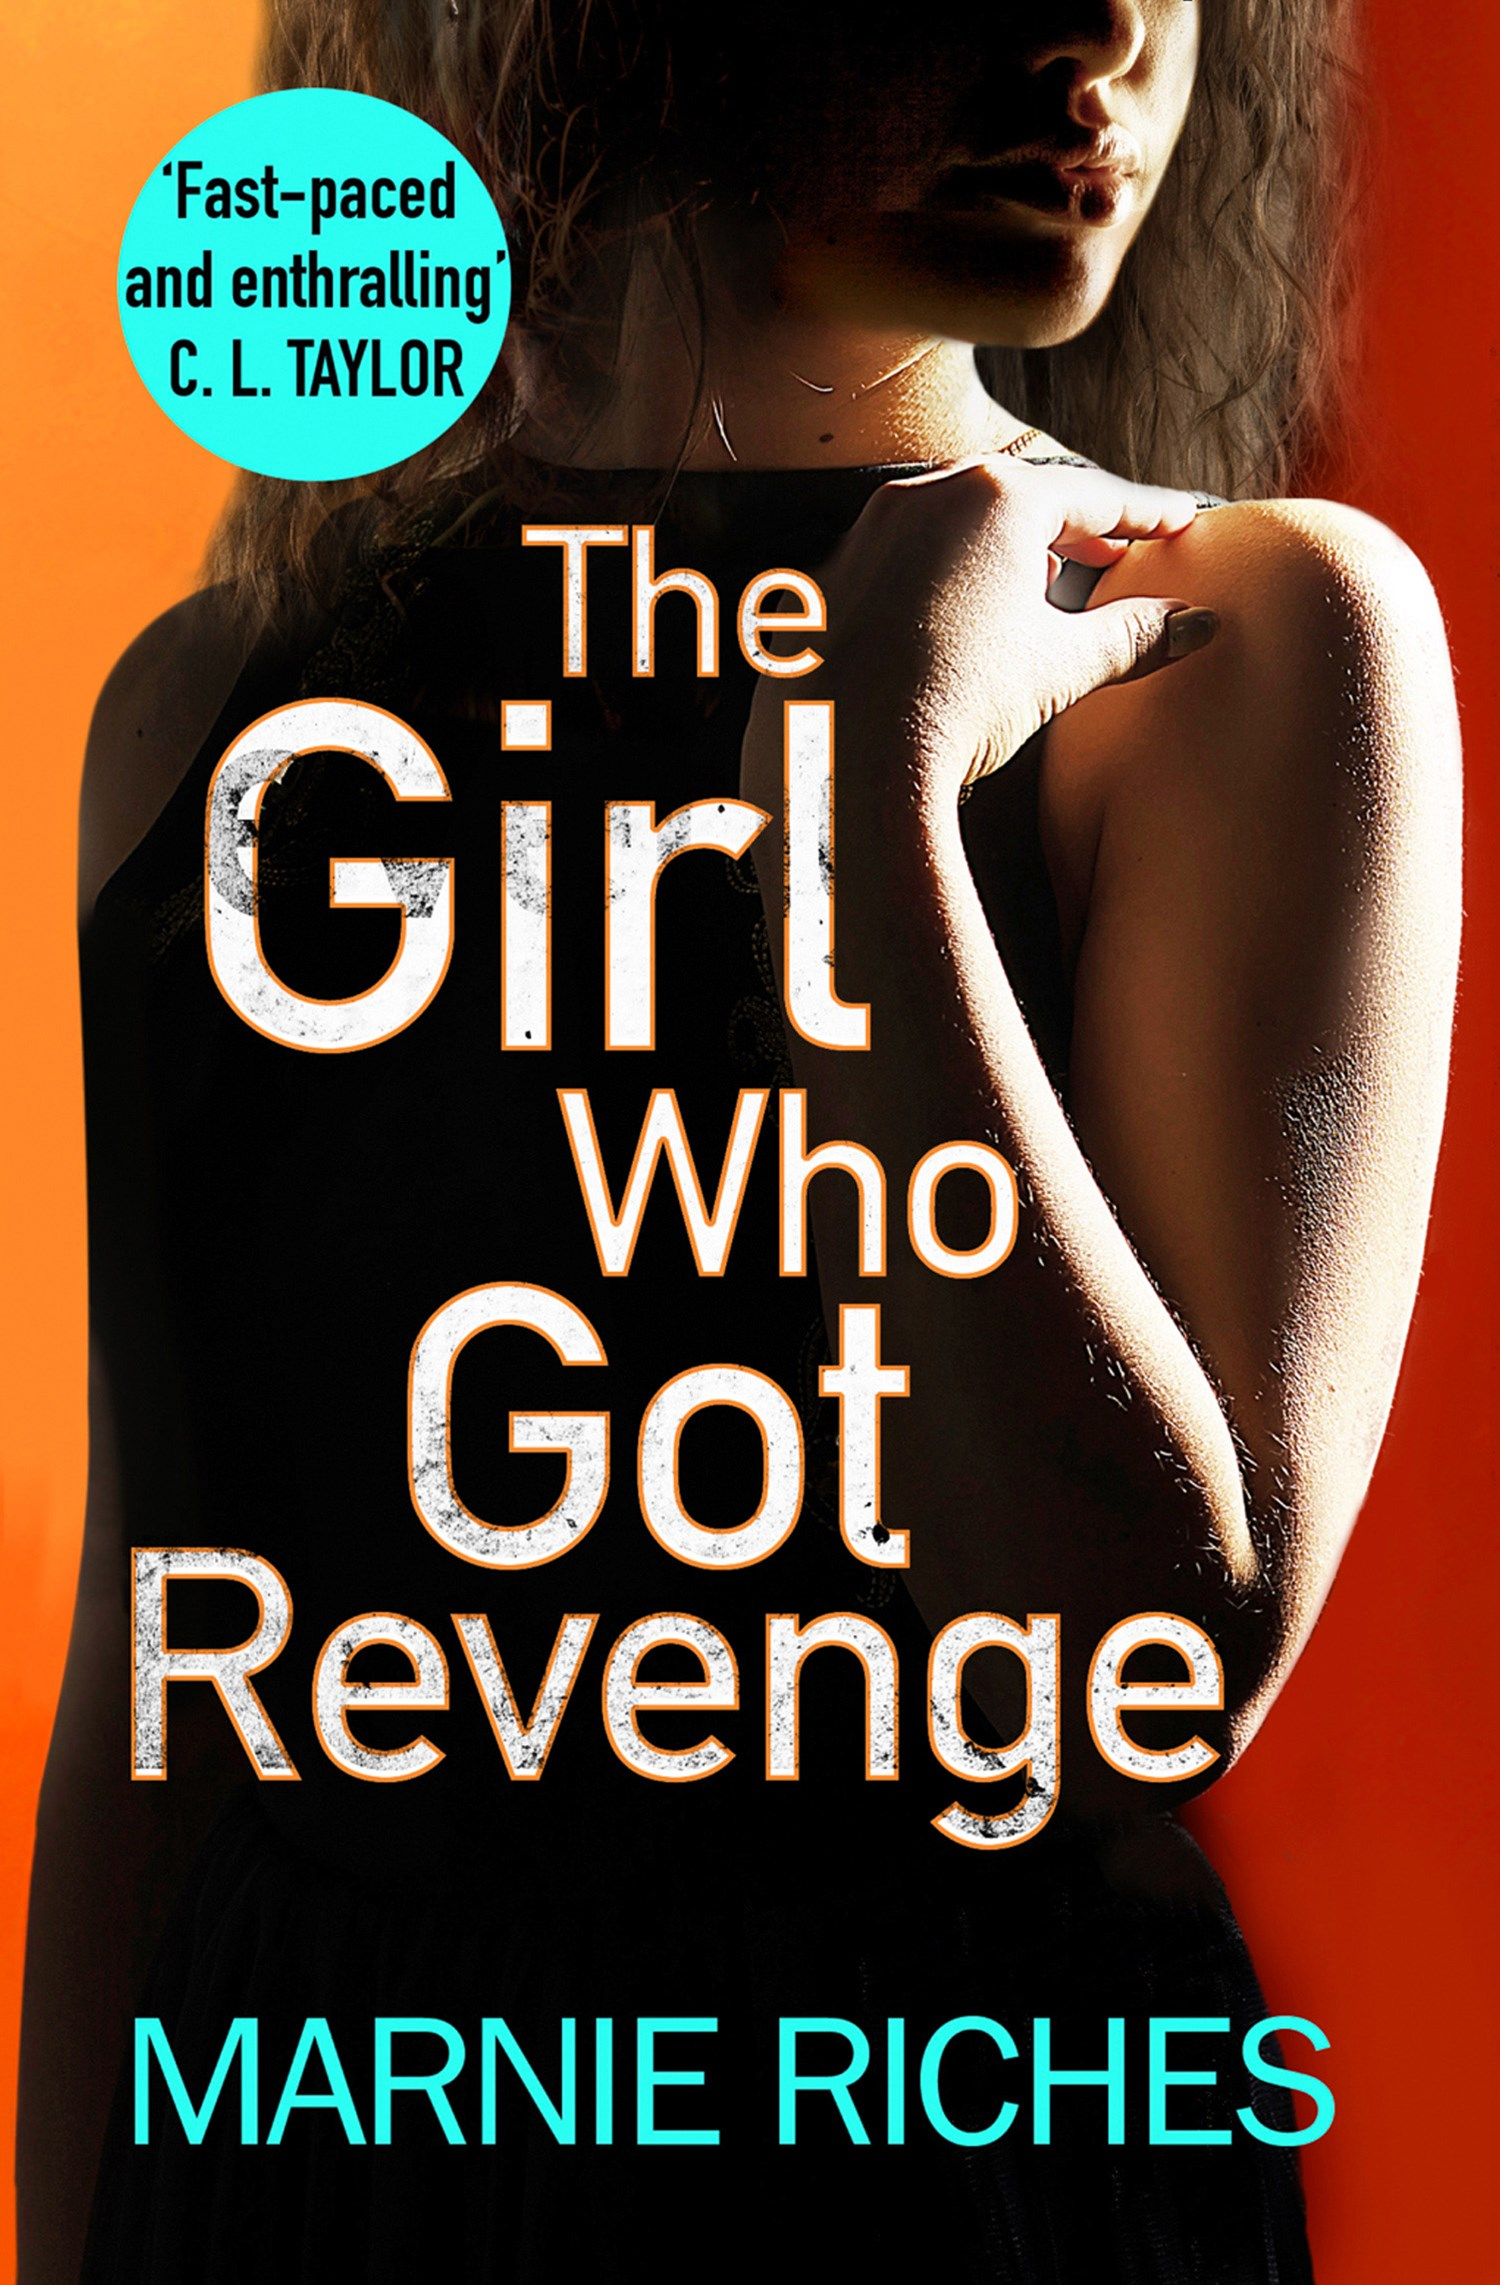 The Girl Who Got Revenge